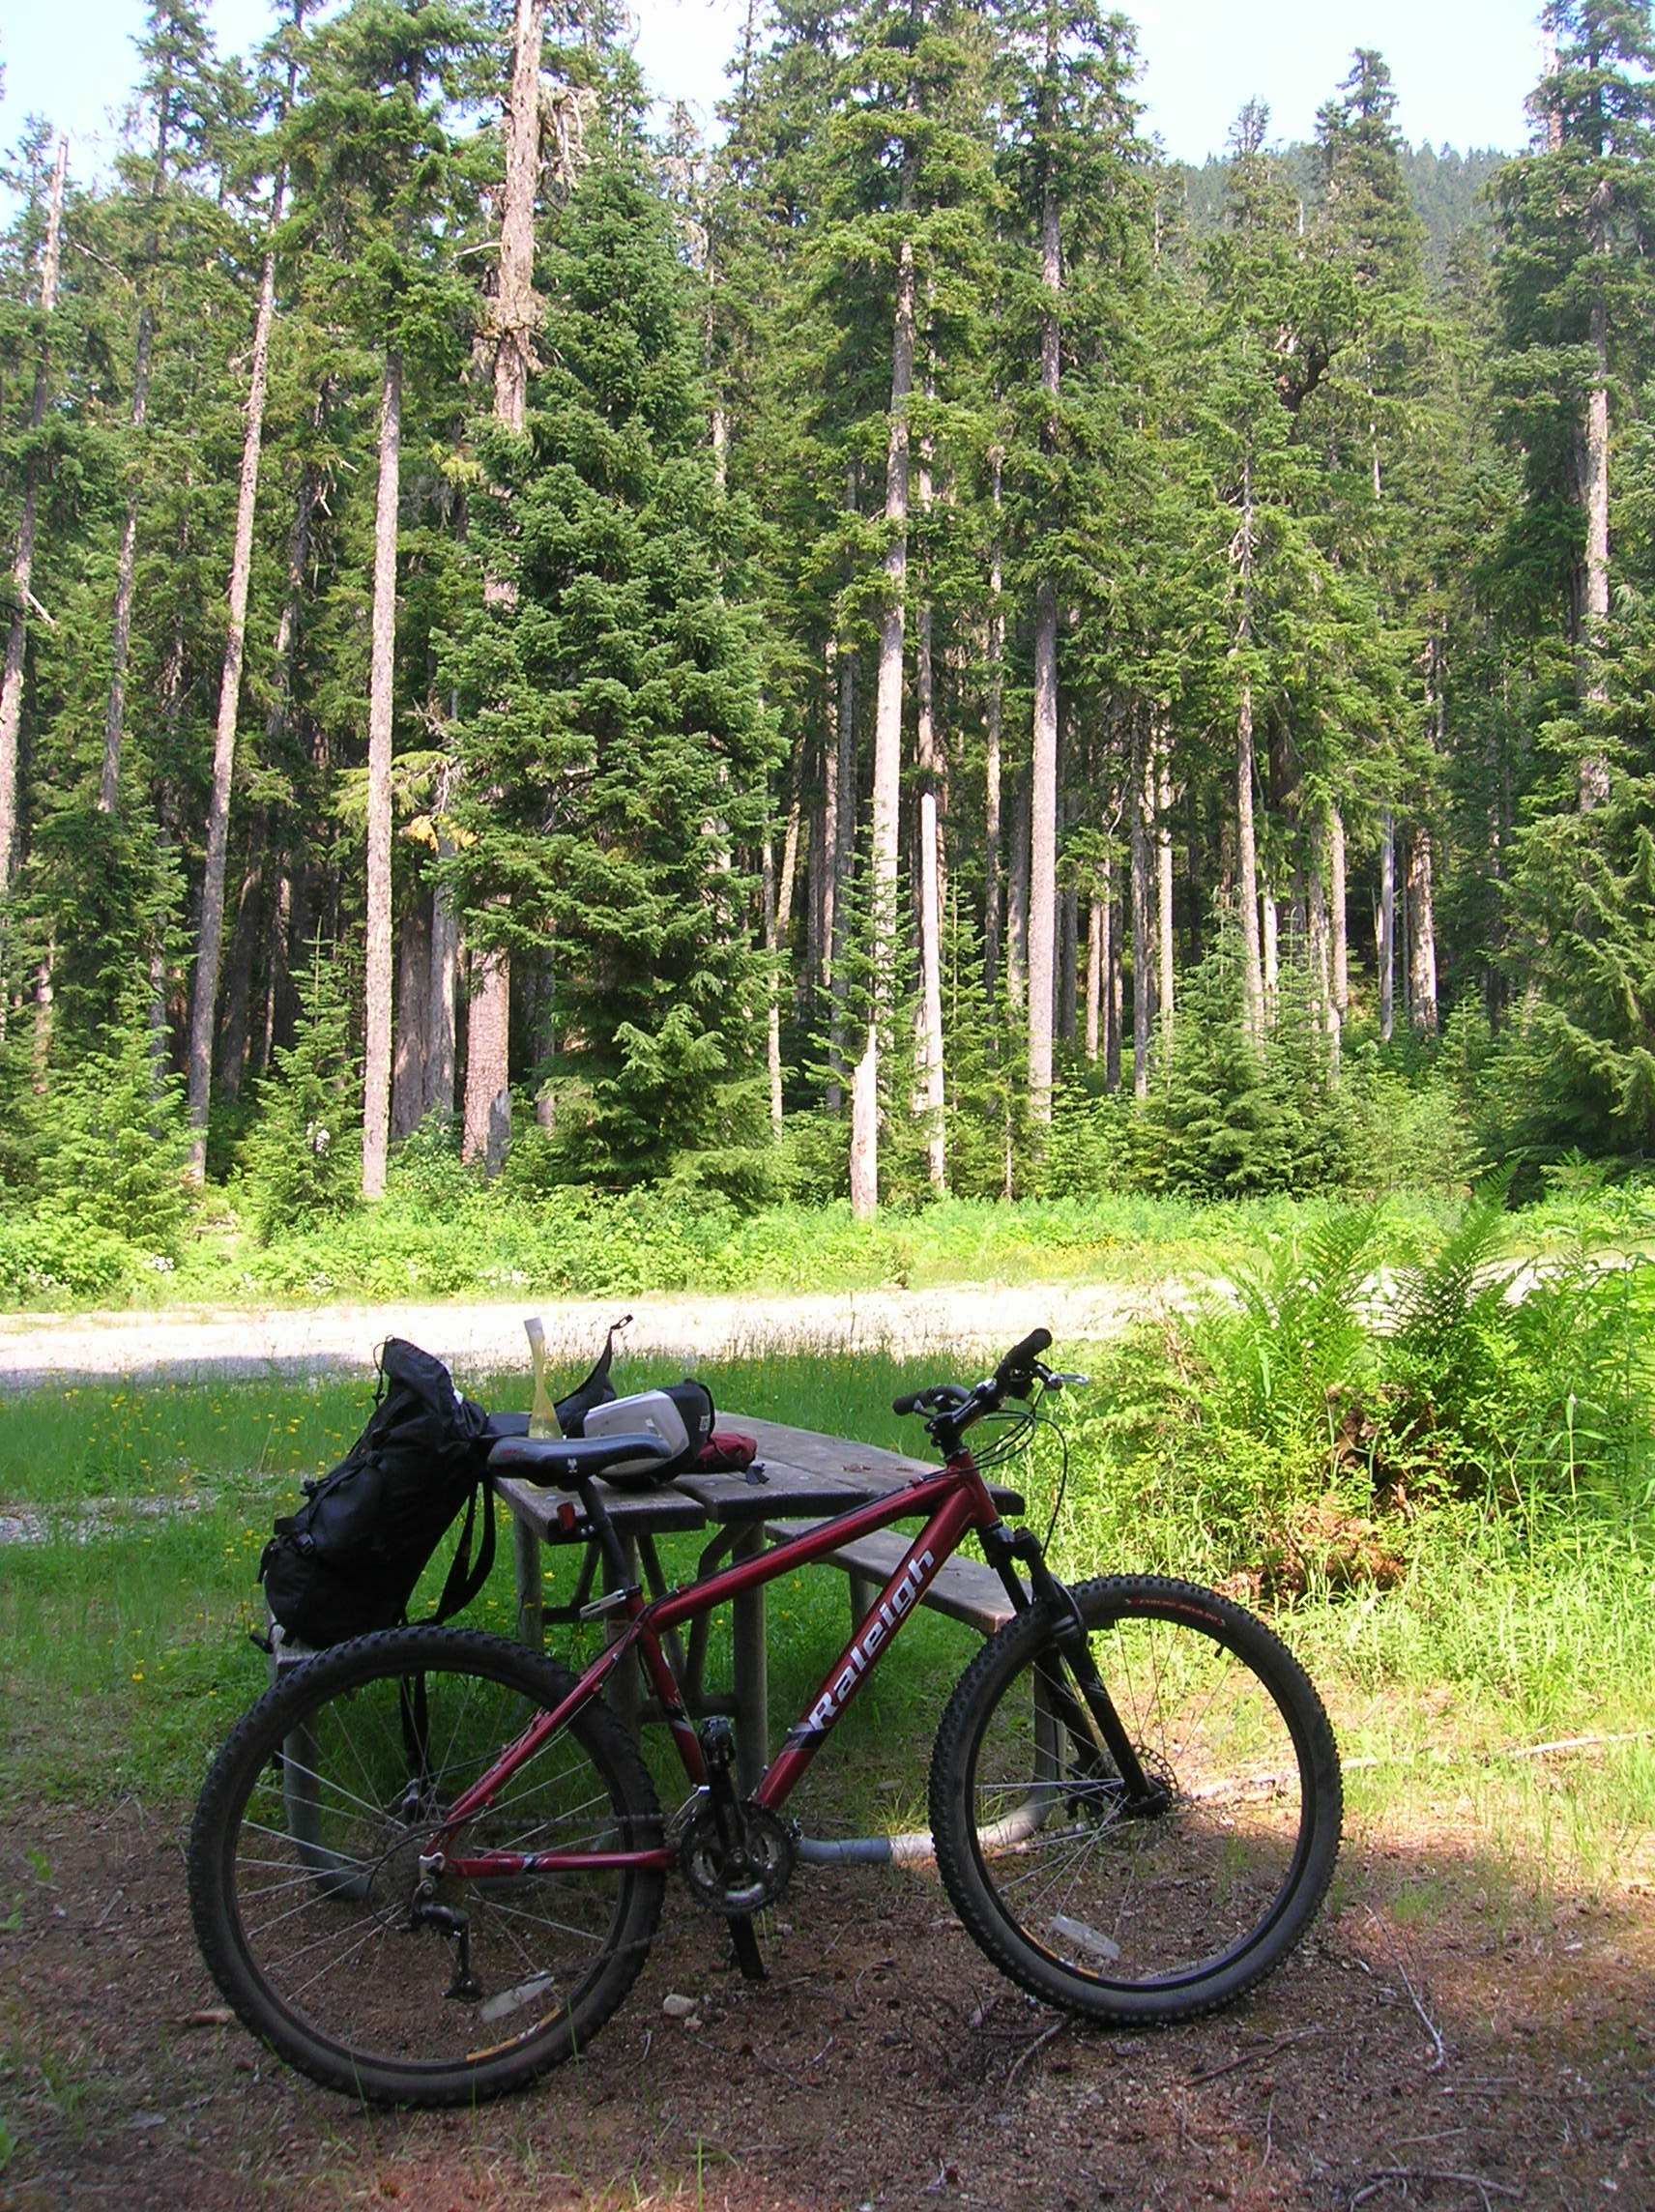 Biking in the Mount Baker-Snoqualmie National Forest